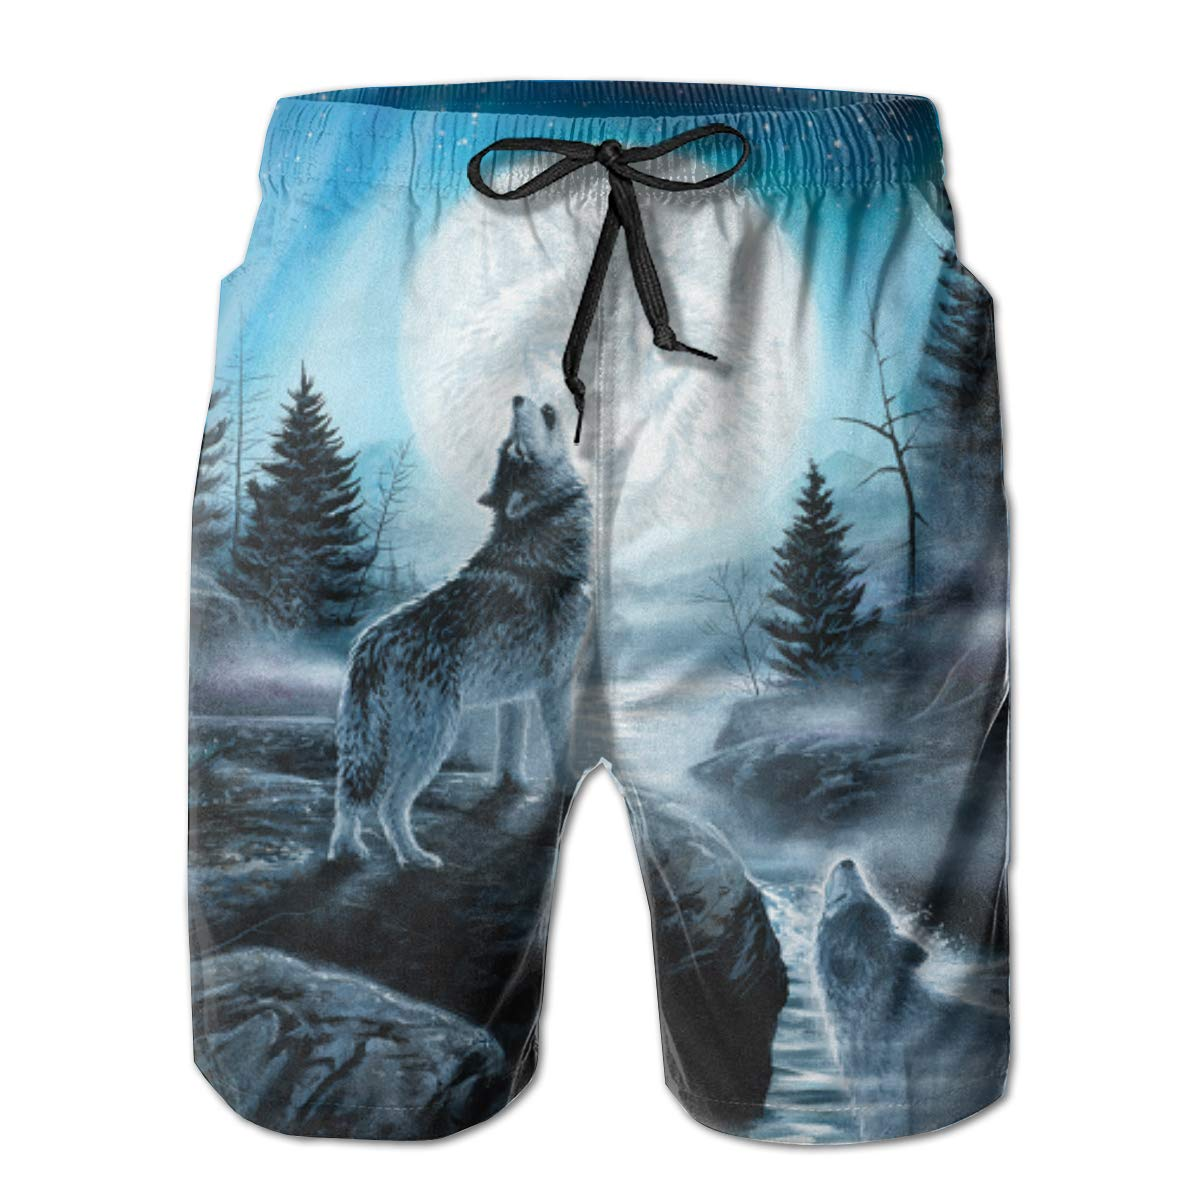 WWT Resentment of The Wolf Mens Quick Dry Beach Shorts with Mesh Lining//Side Pockets